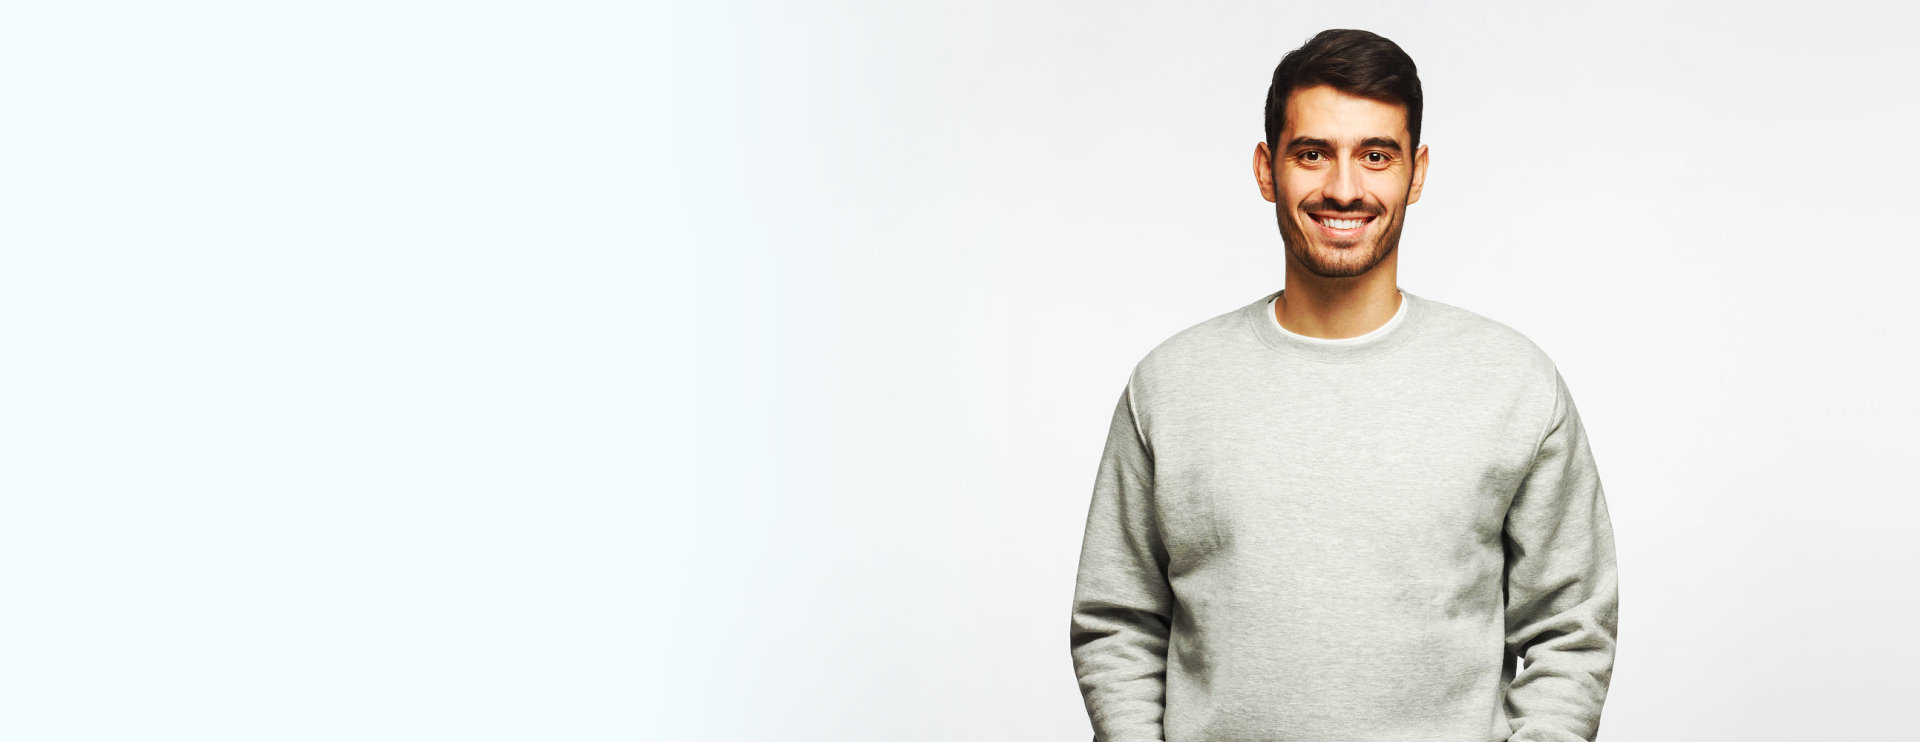 young man smiling and wearing gray longsleeve